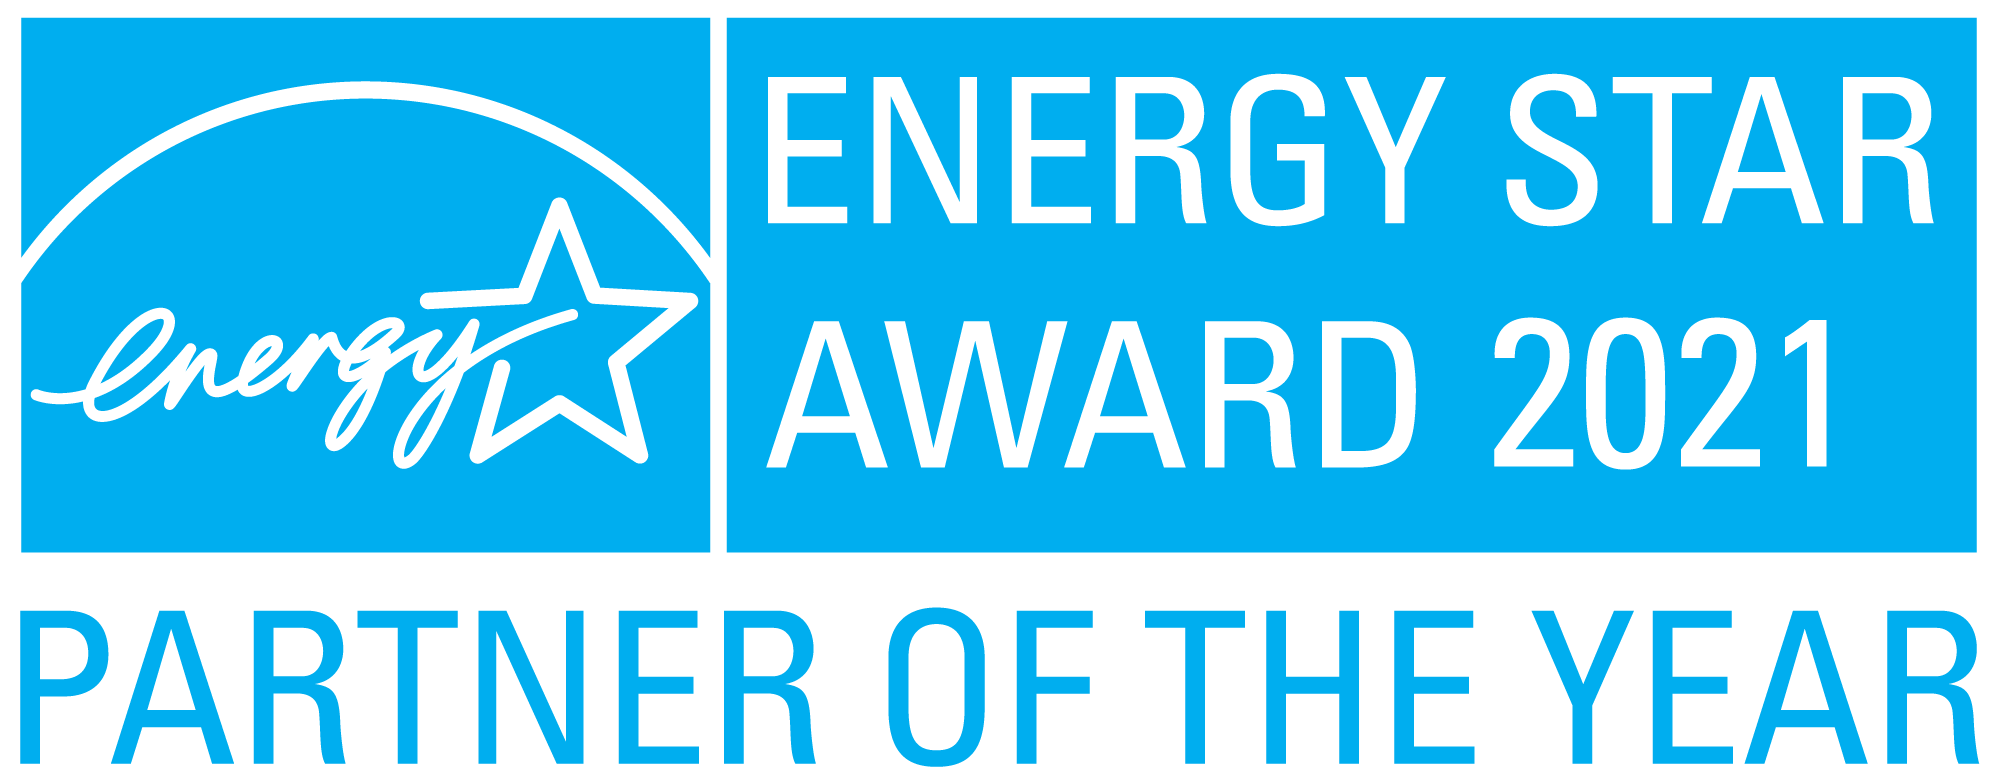 LISD named a 2021 ENERGY STAR Partner of the Year.